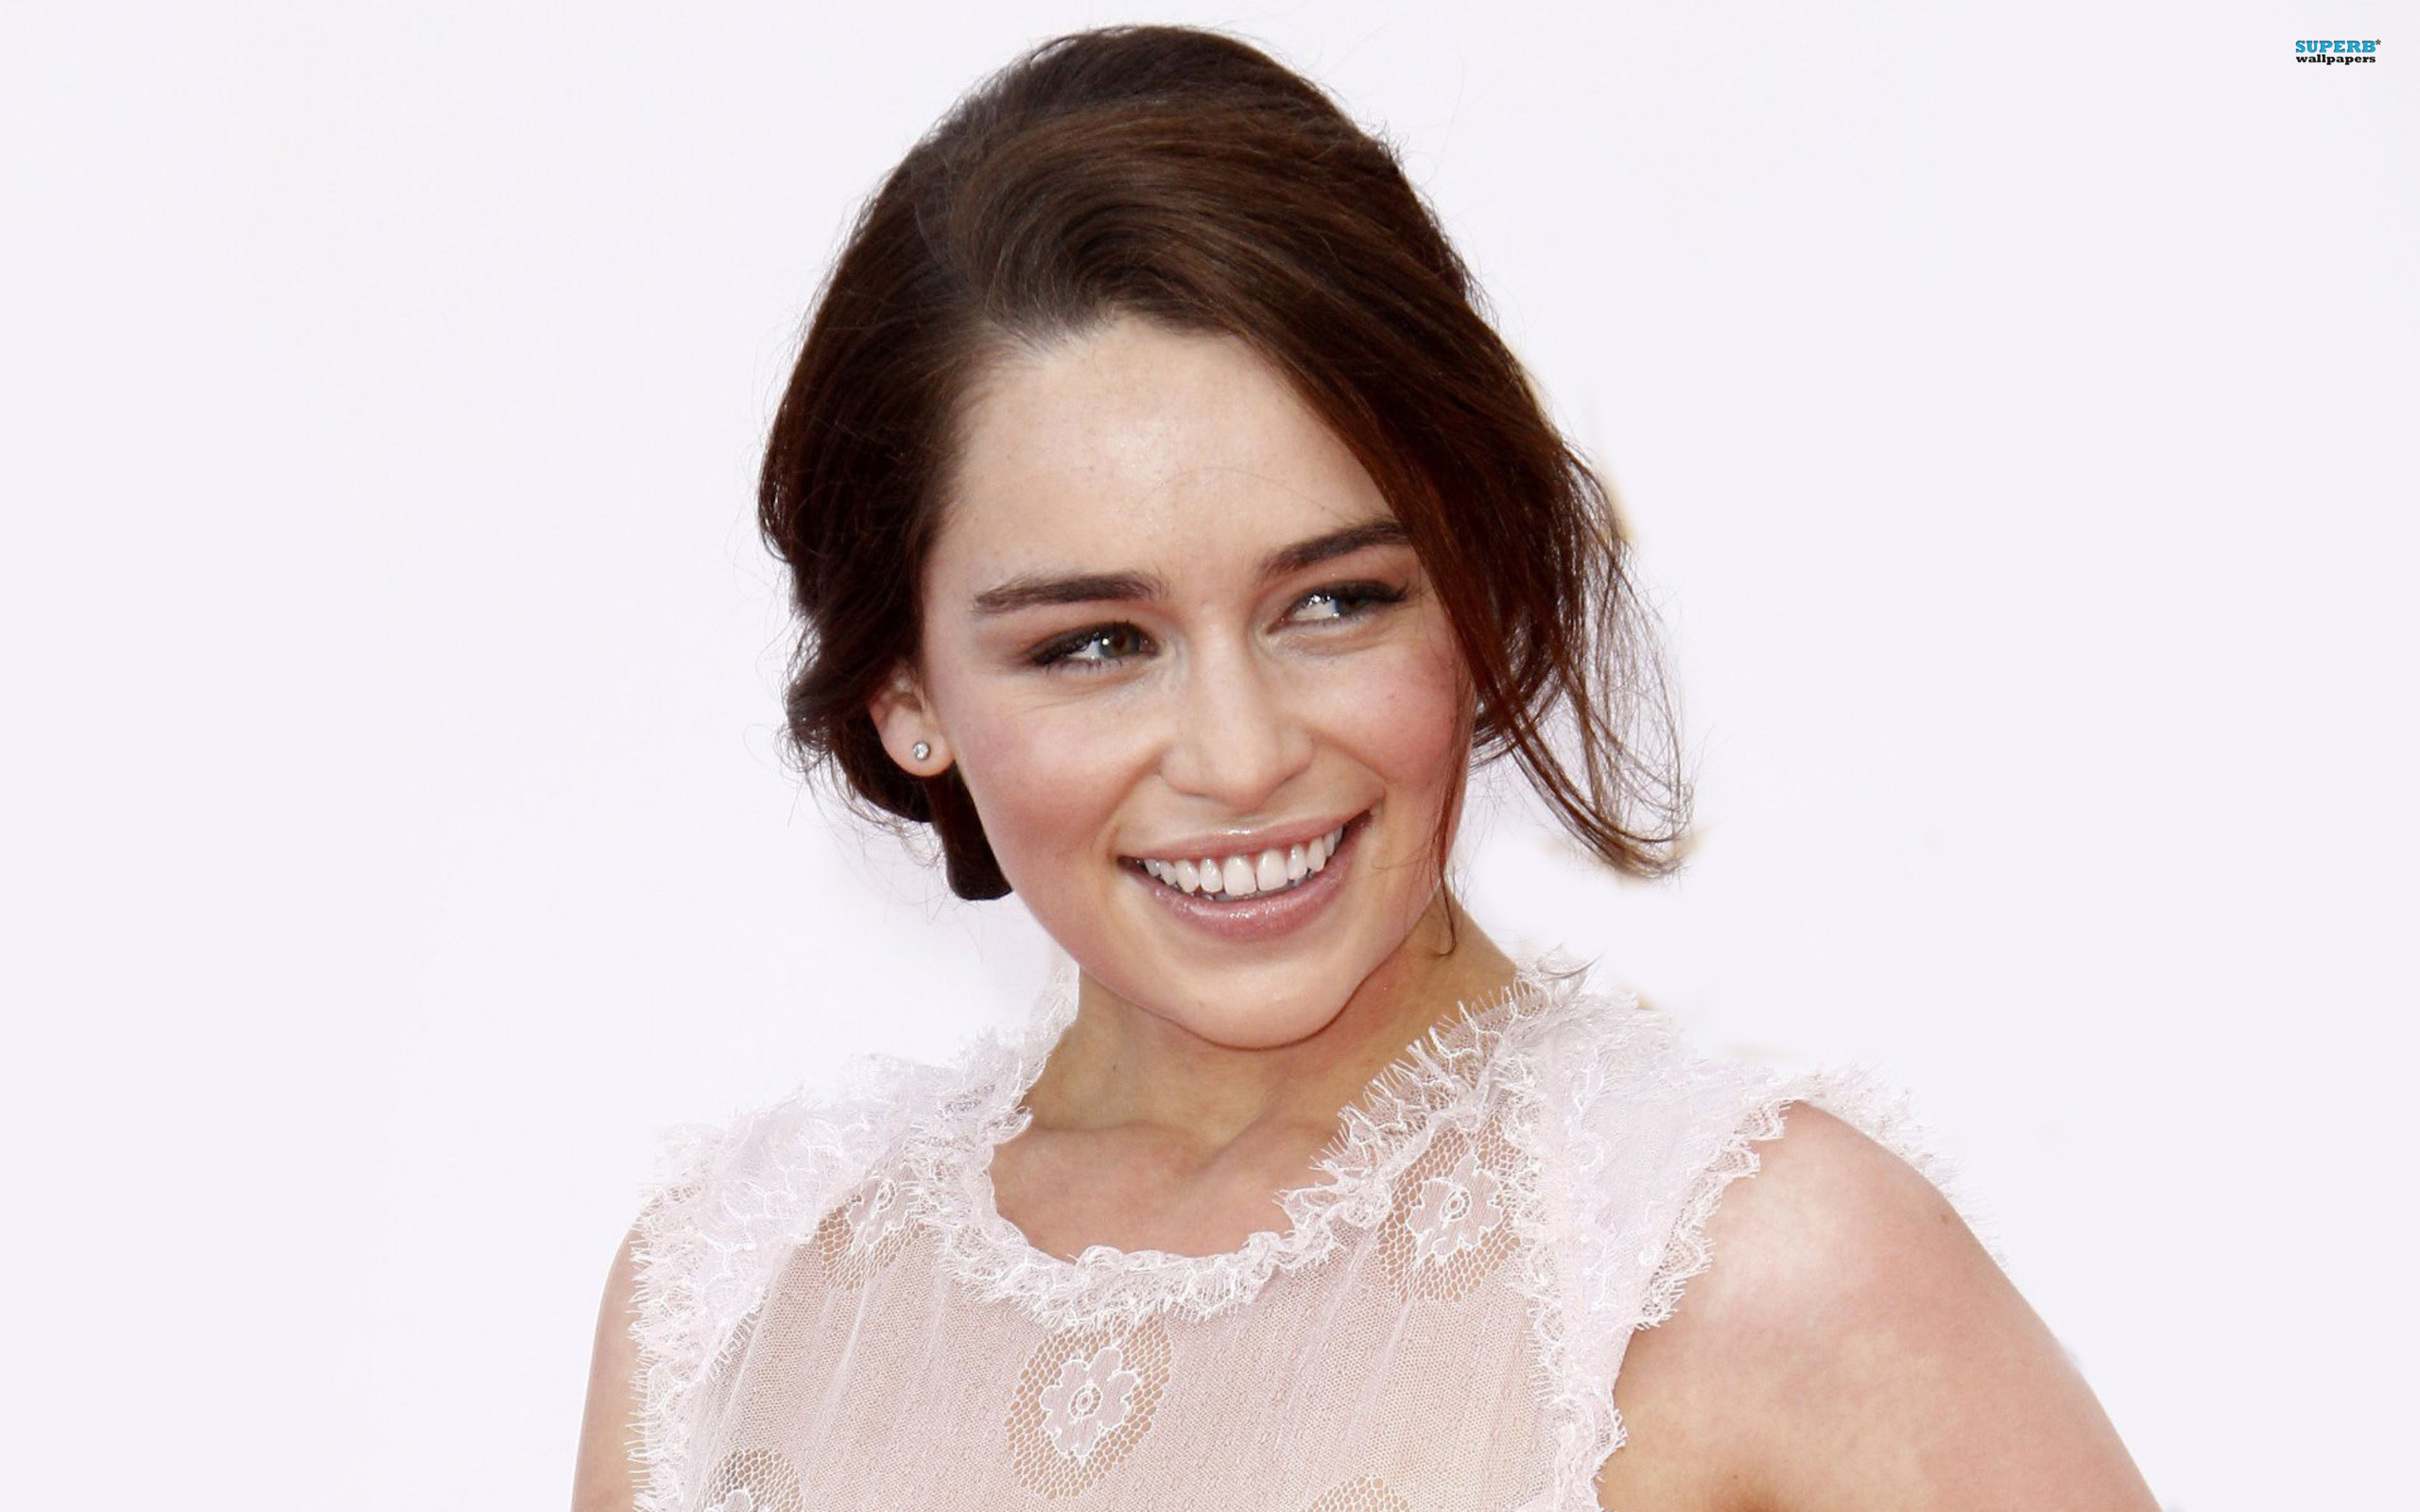 Search result: Free HD Wallpaper Hosting, Emilia Clarke Iphone Wallpaper by Chadski On Deviantart ,Emilia Clarke Game Of Thrones Wallpapers ,Free Wallpapers ...